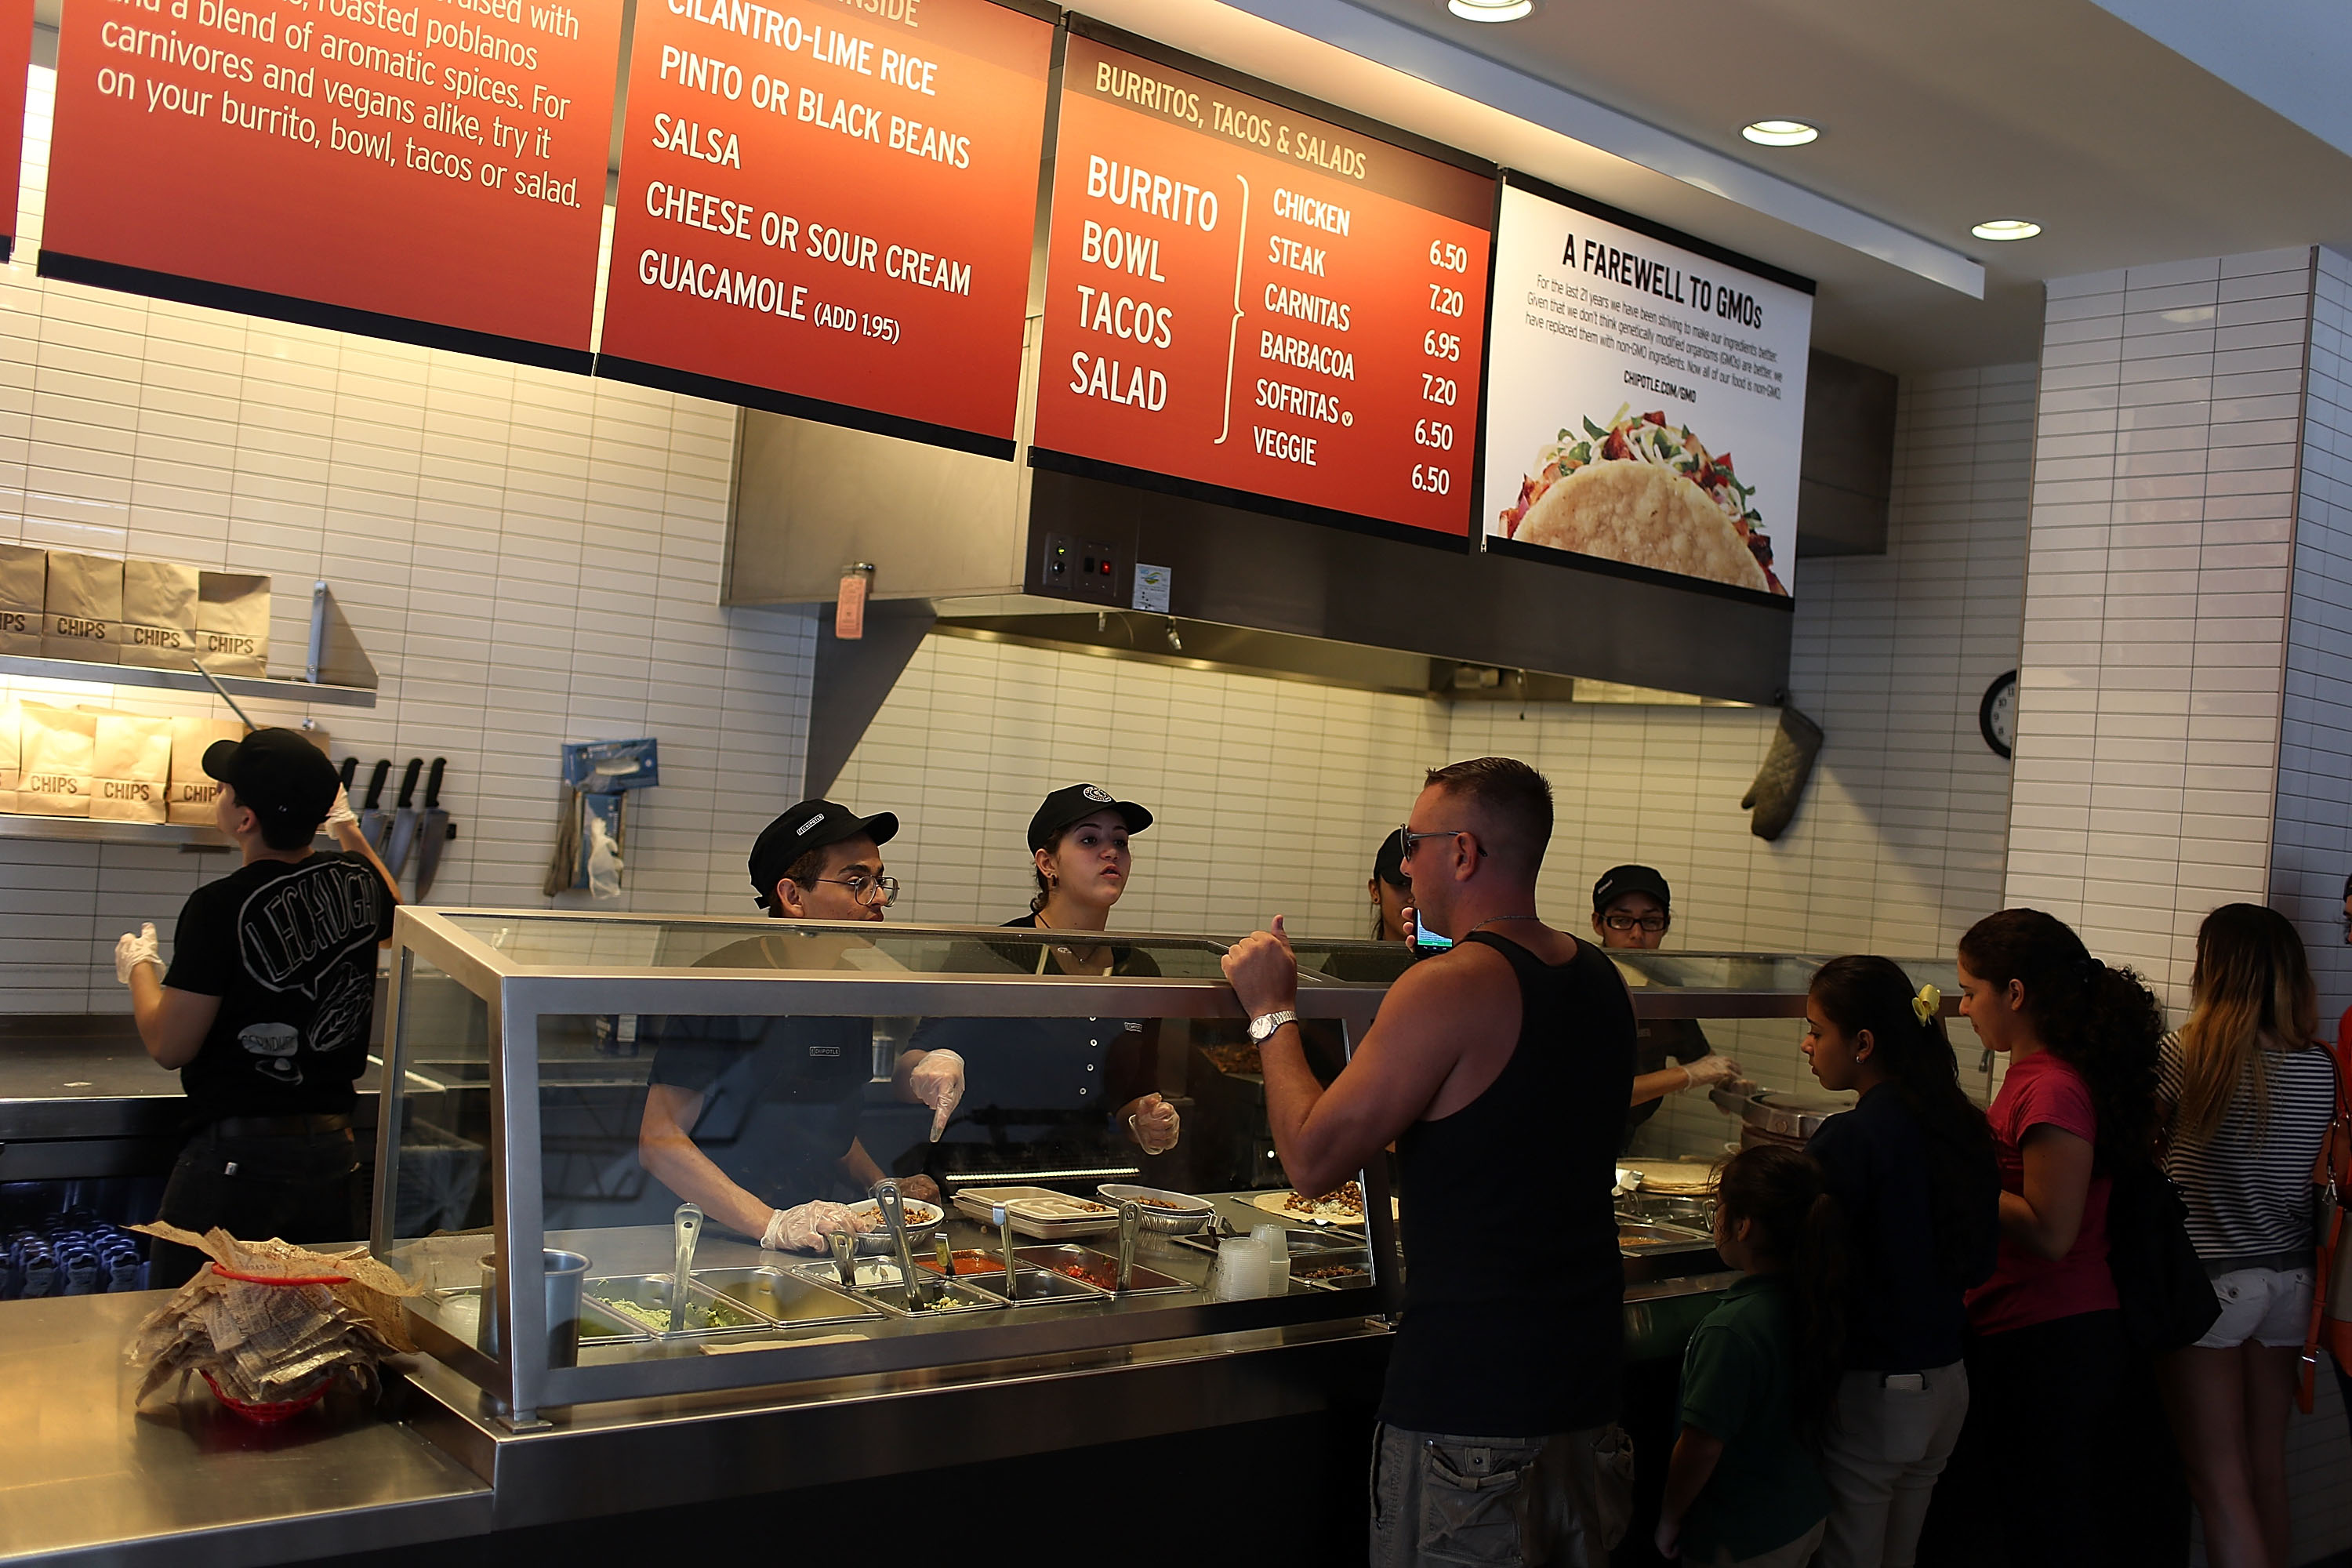 Chipotle Offers a Halloween Special; Fast Food Drive-Thrus Are Slowing Down